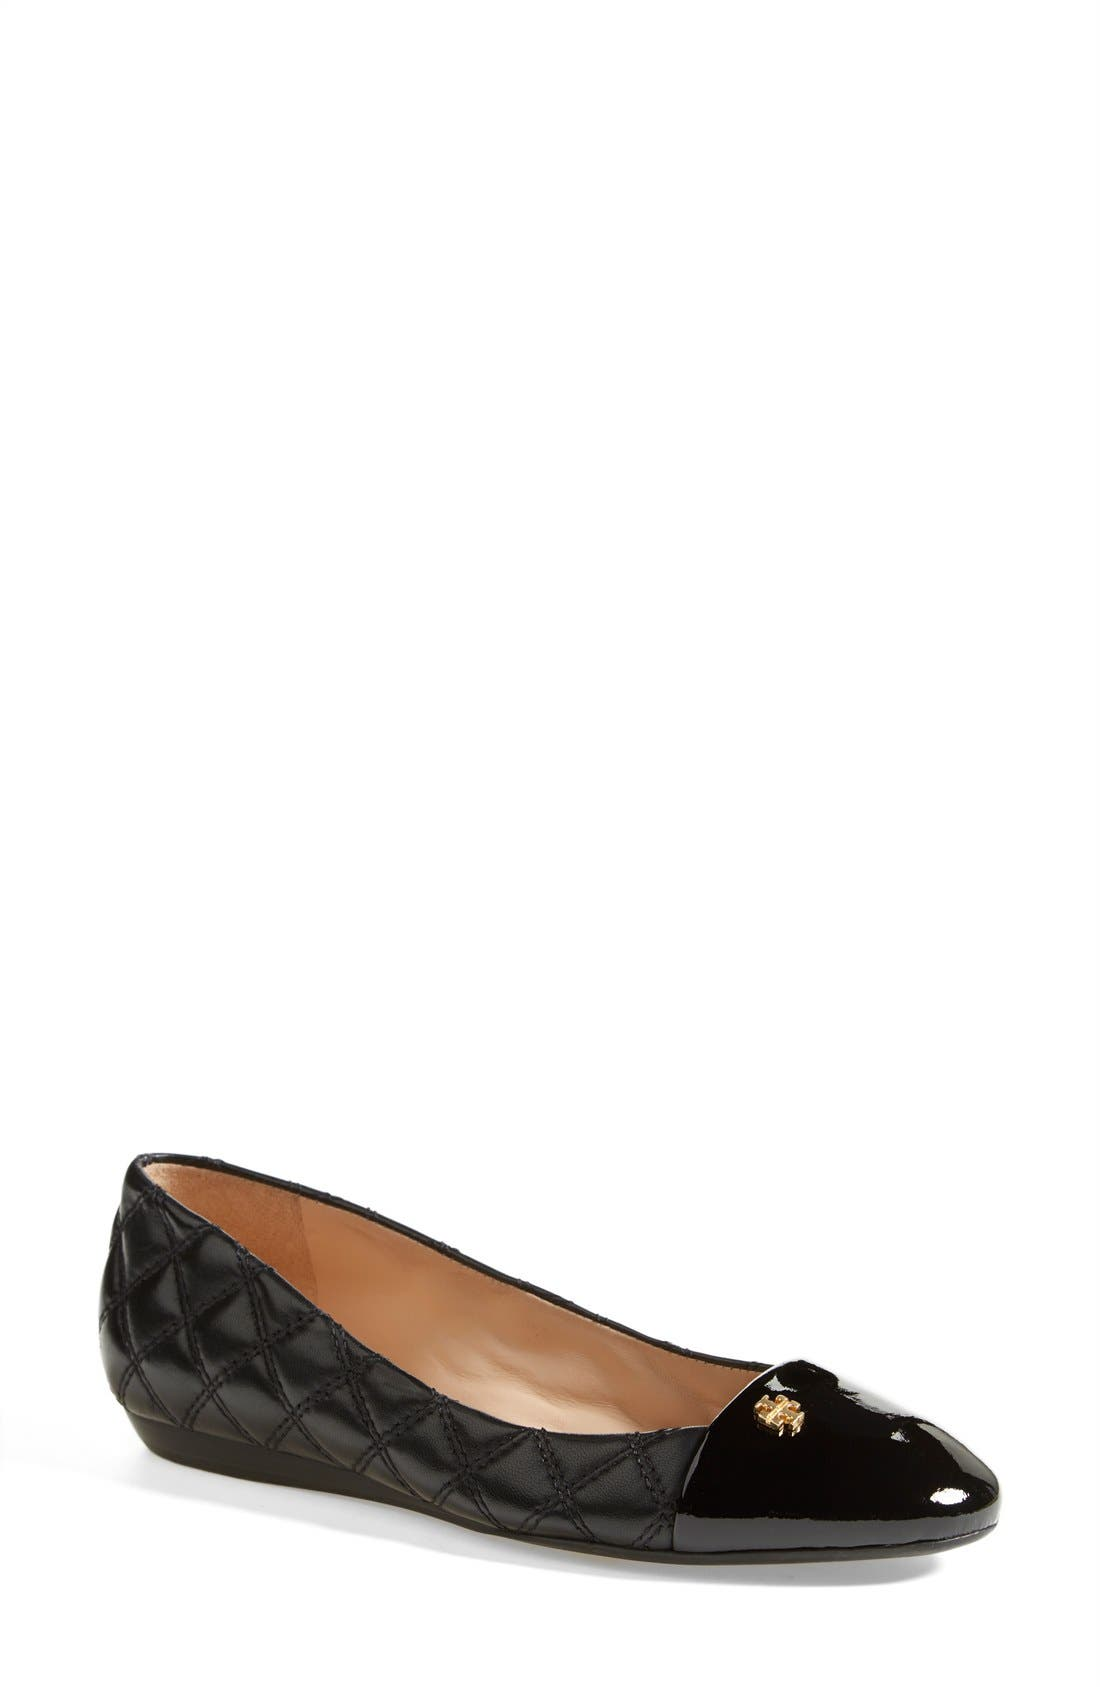 Alternate Image 1 Selected - Tory Burch 'Claremont' Quilted Flat (Women)